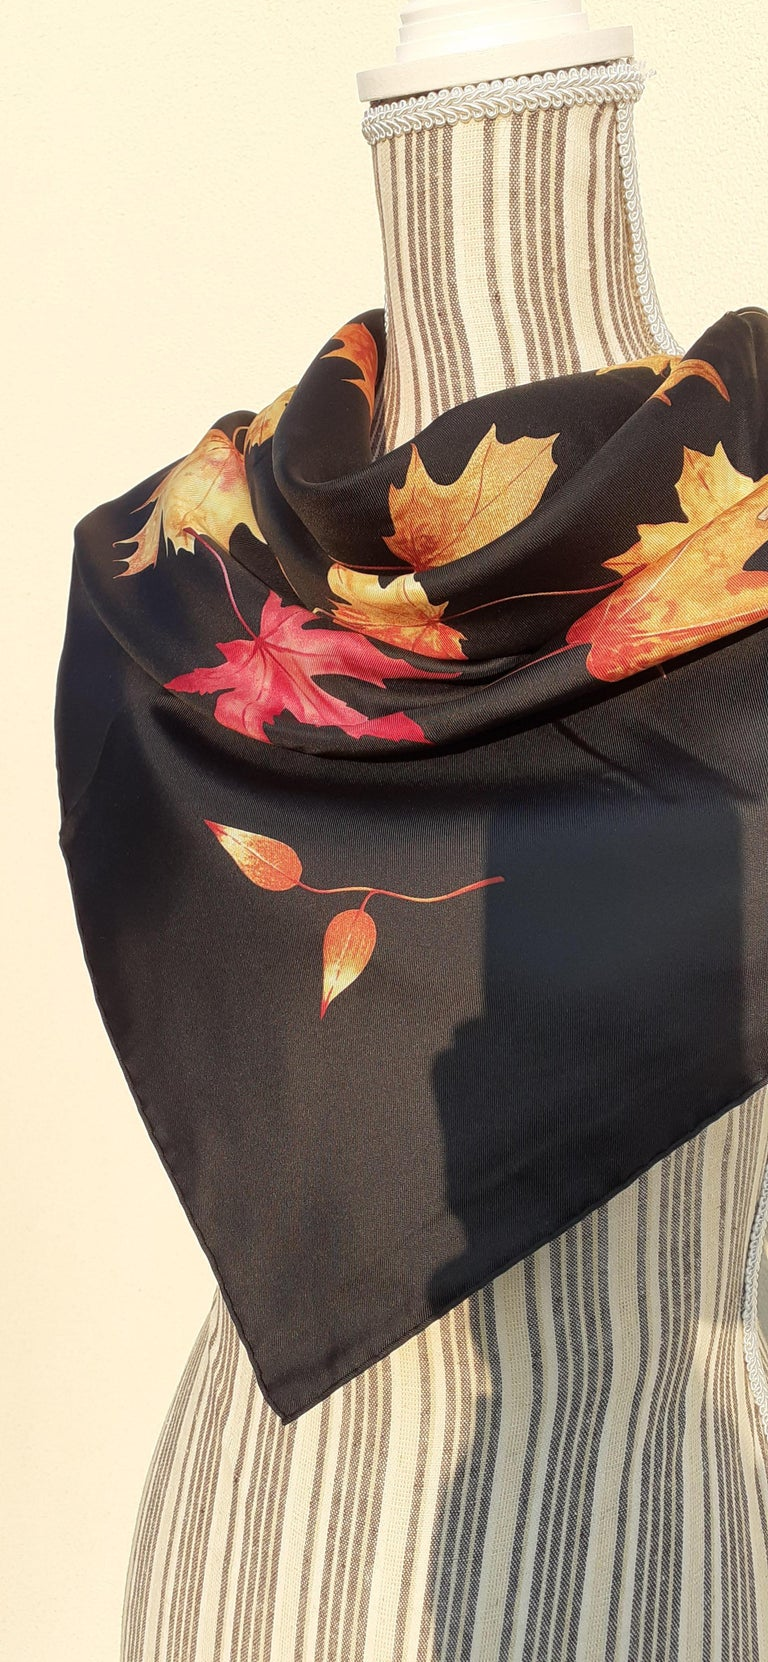 Hermès Silk Scarf A Walk In the Park Leigh P Cooke Leaves Black 90 cm  For Sale 16